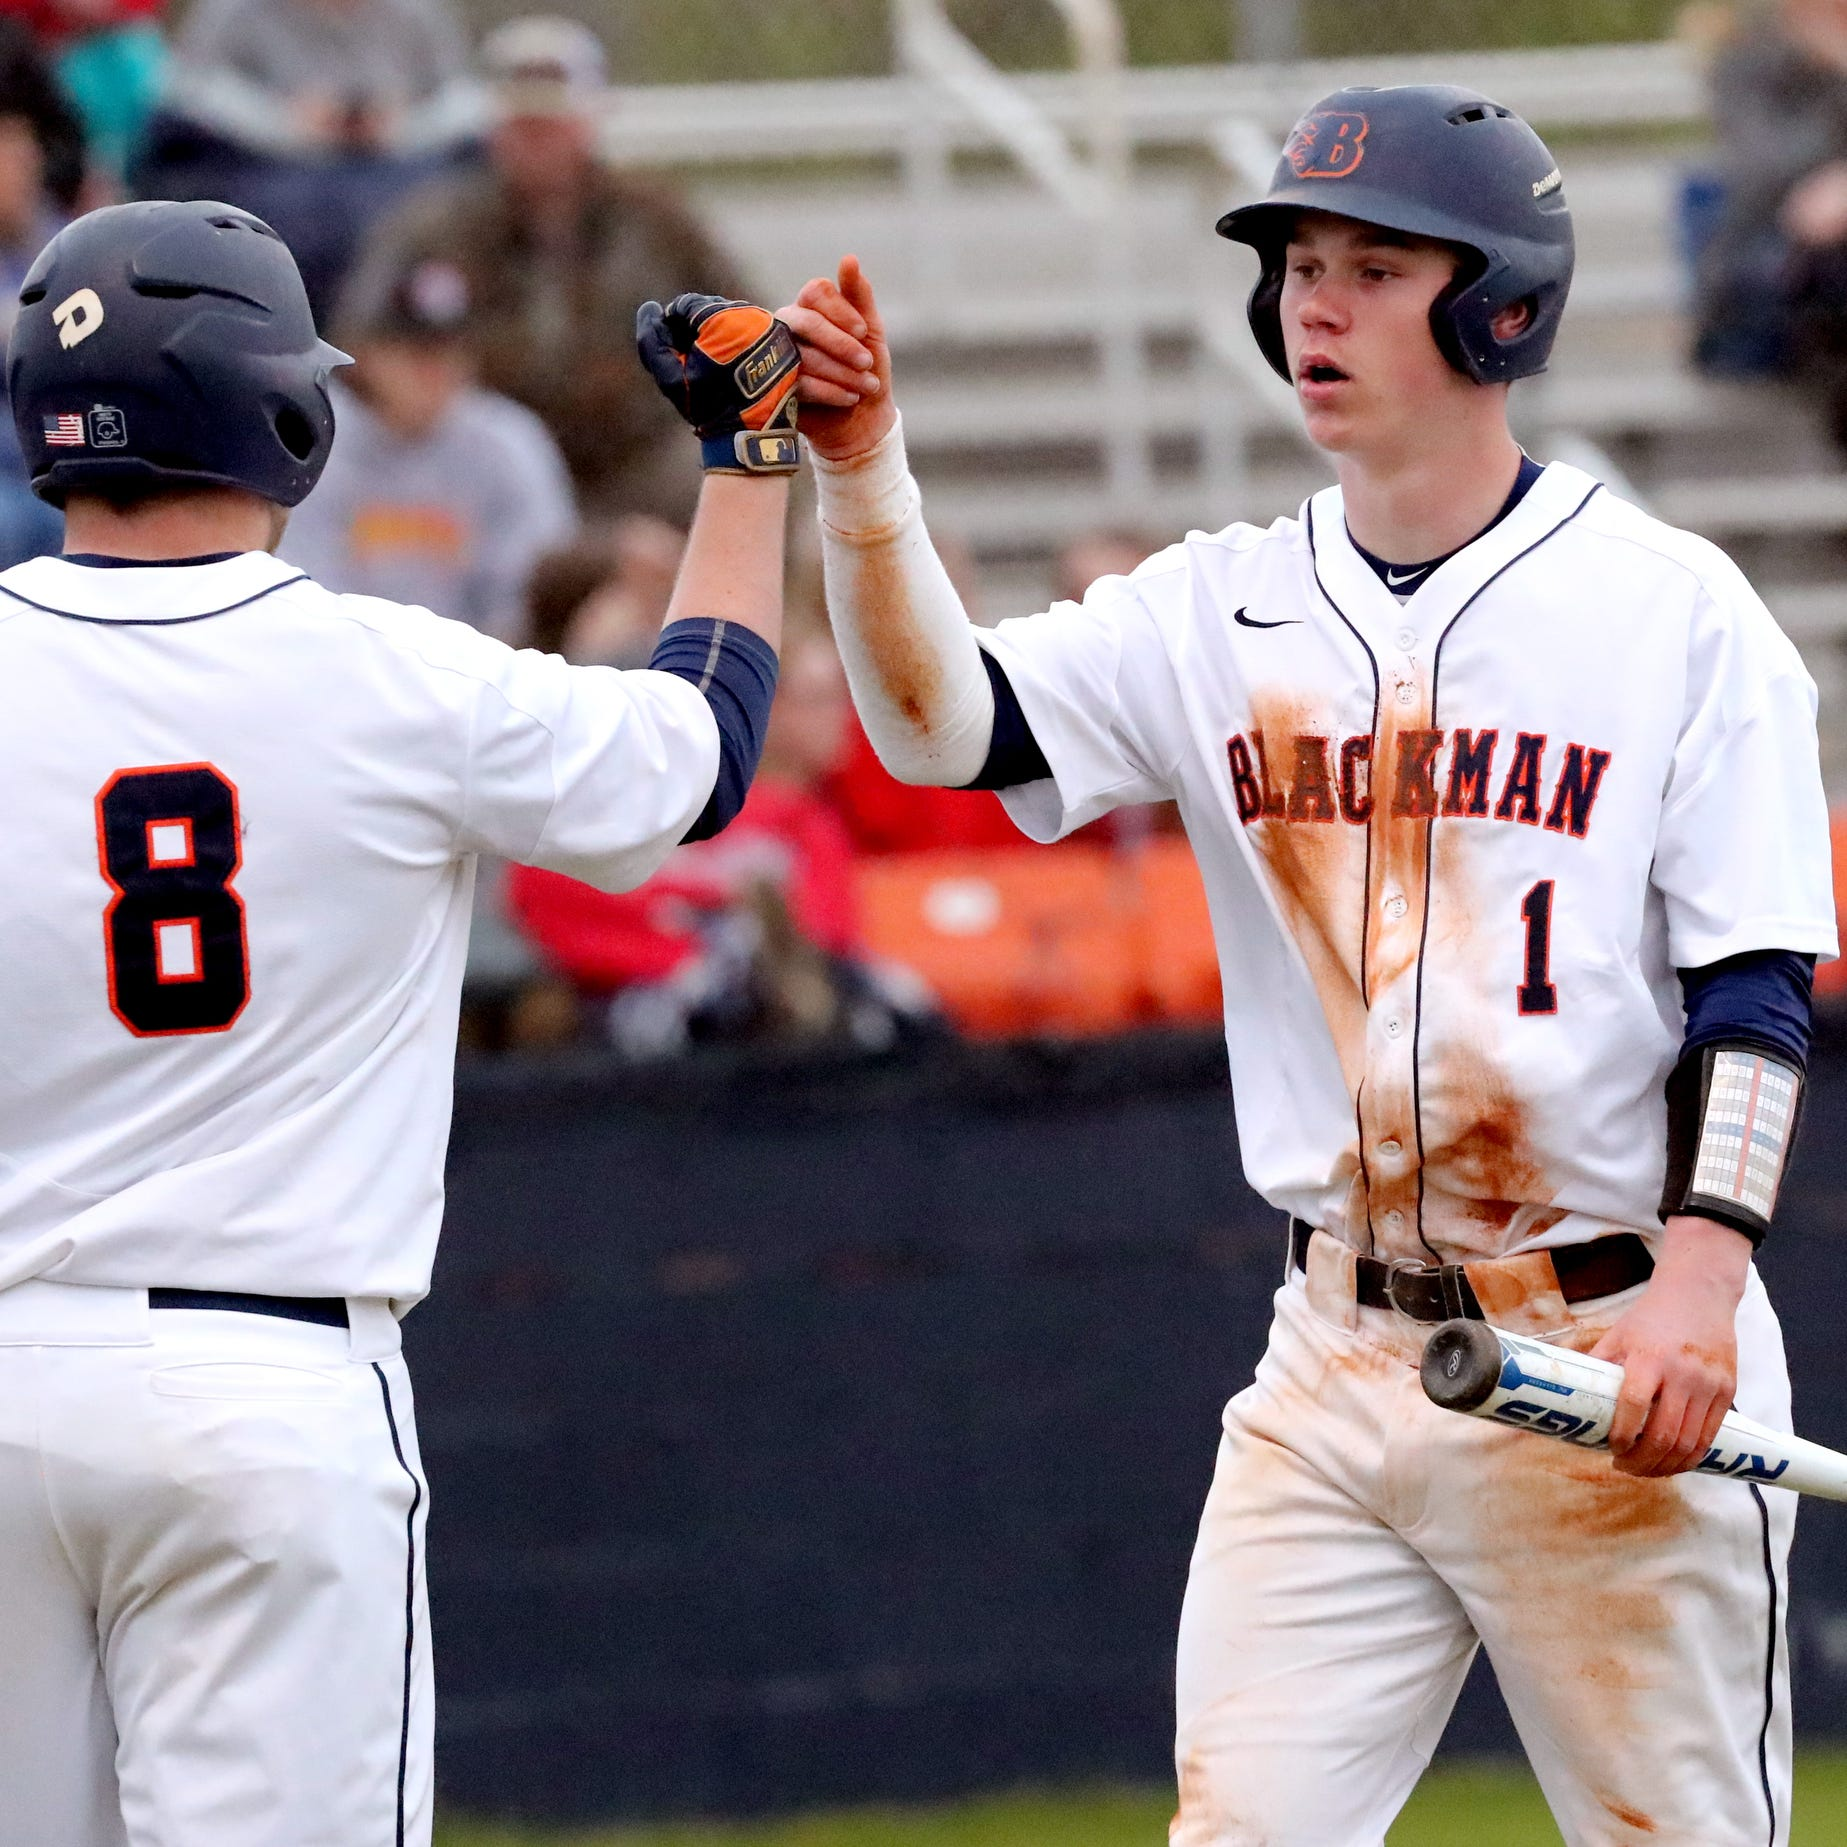 Blackman's Conner Murphy (1) celebrates a run against Stewarts Creek, with Blackman's Christian Sanderson (8) on Monday, March 25, 2019.